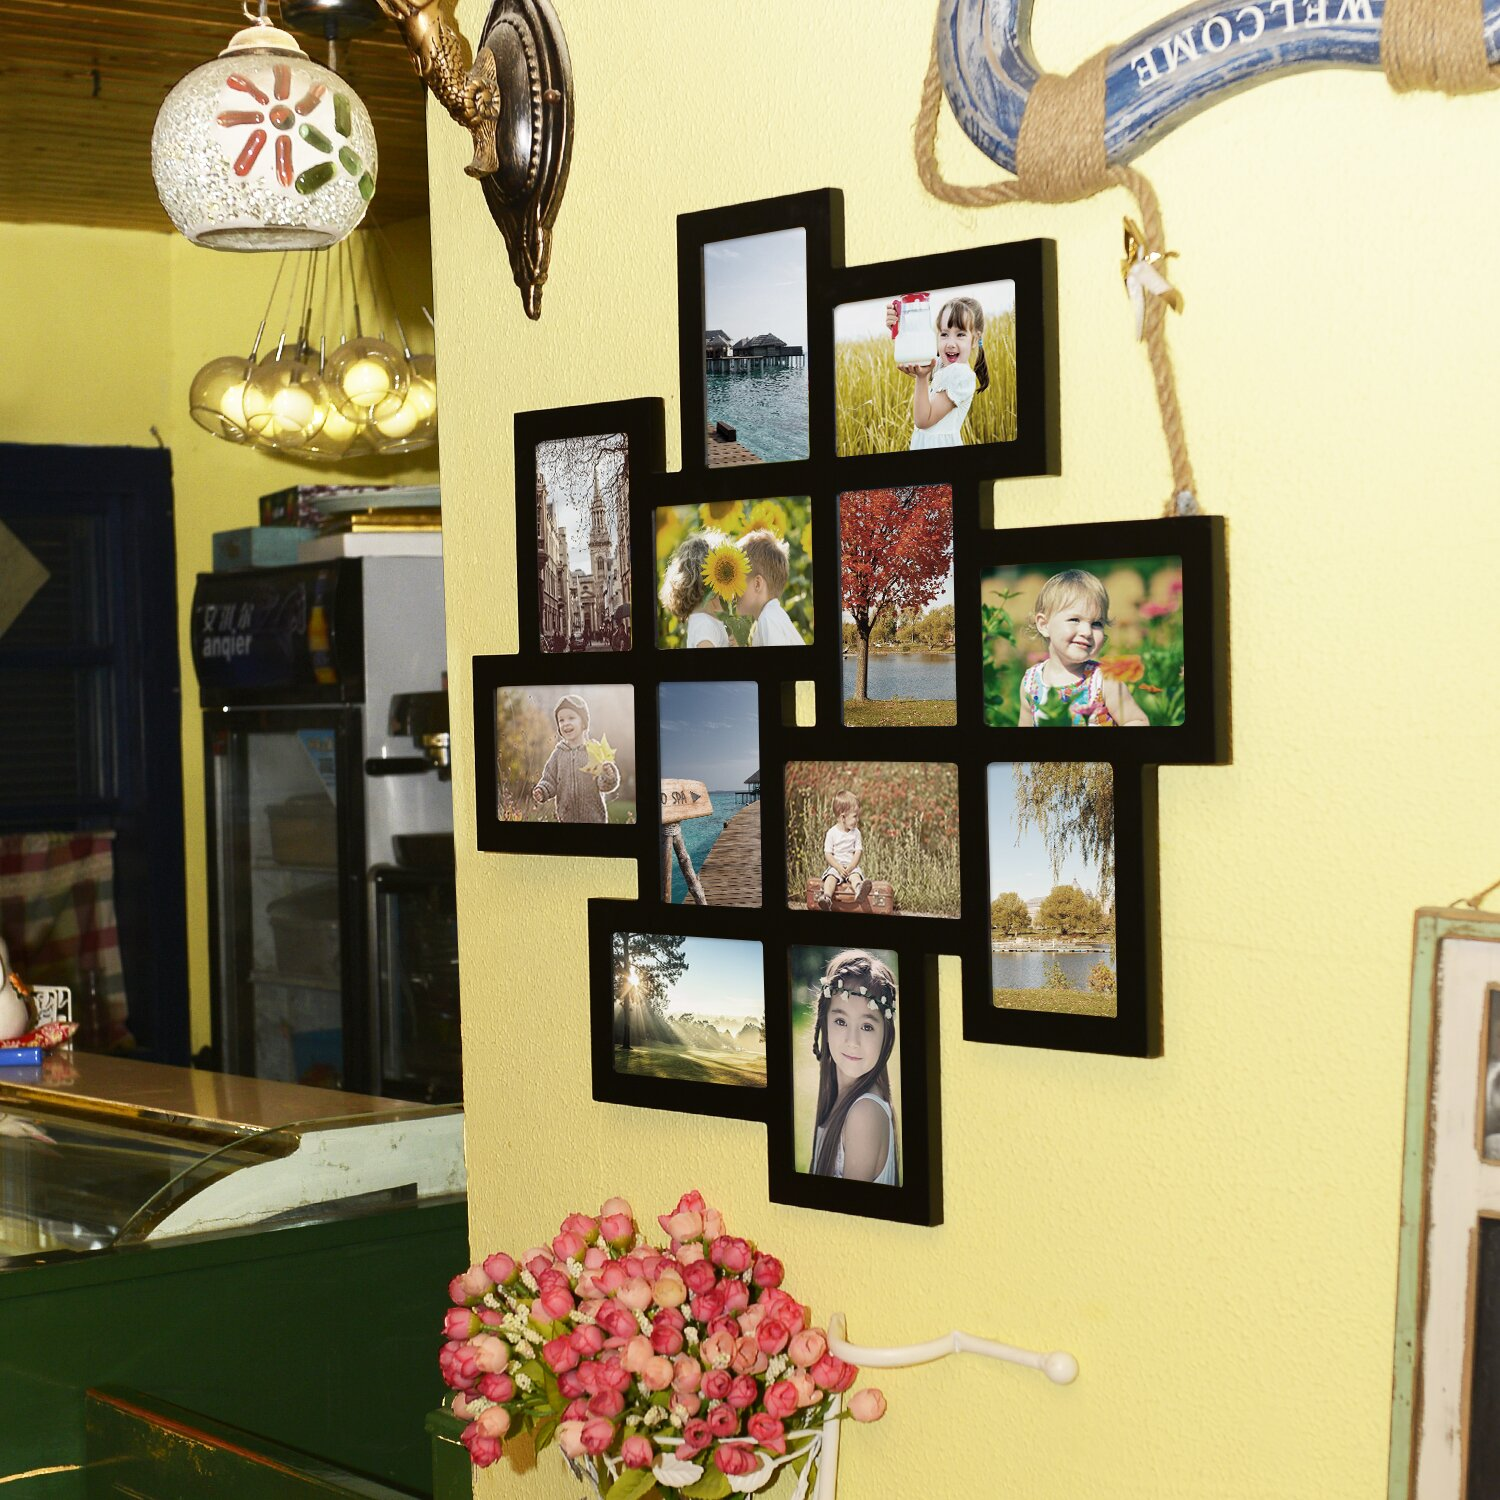 Magnificent Decorative Wall Calendar Frames Picture Collection - The ...